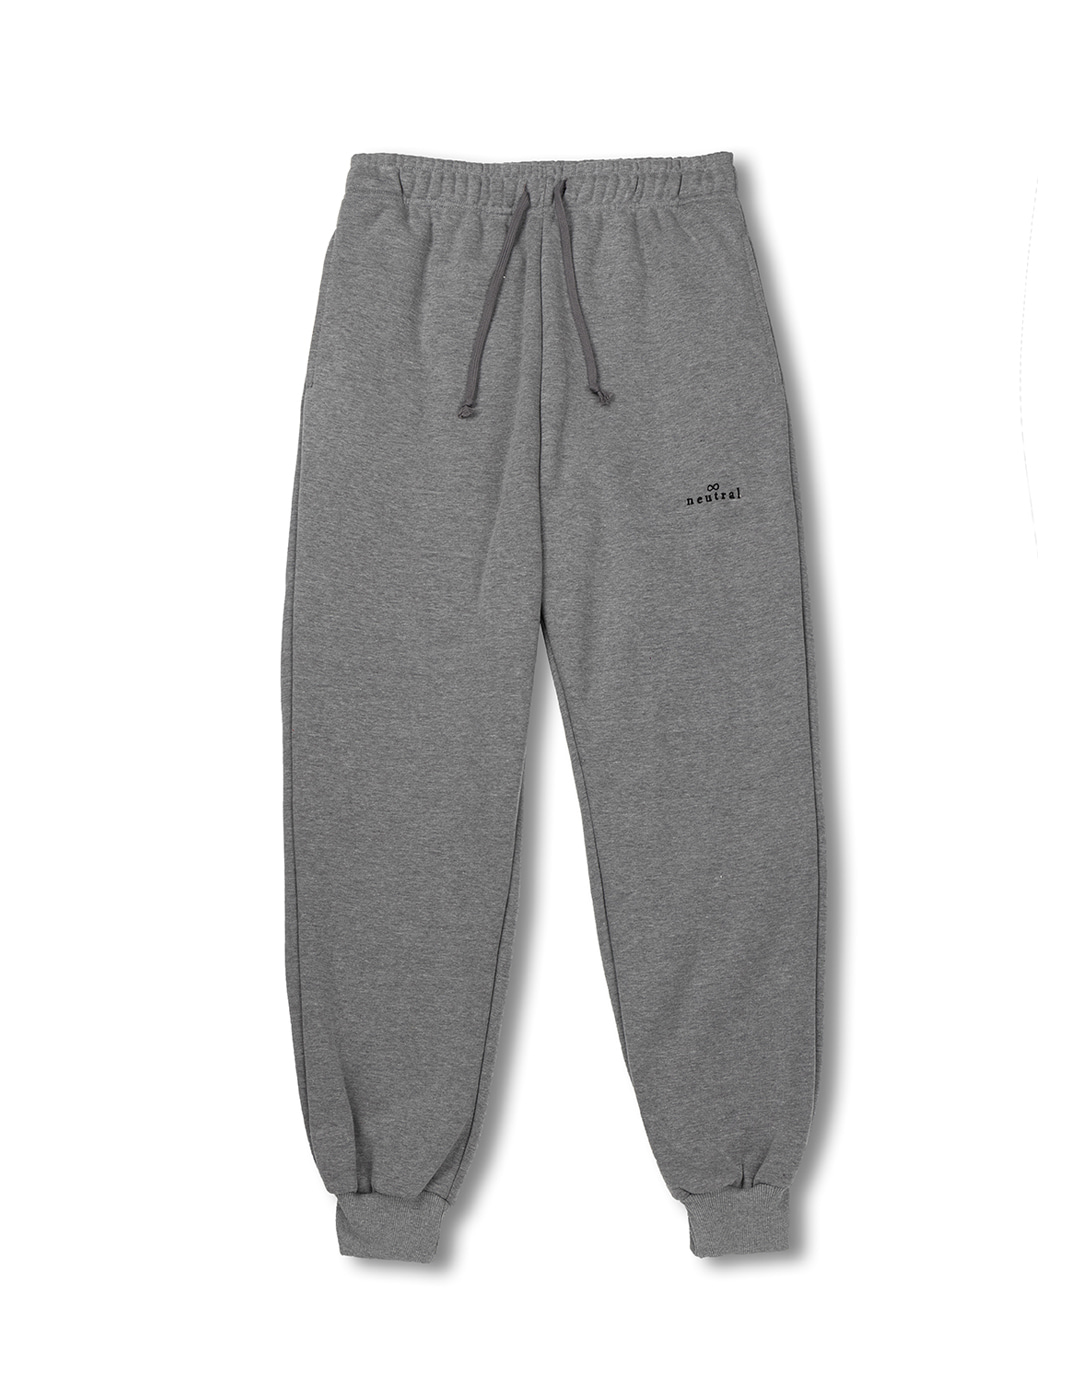 Gray jogger sweatpants